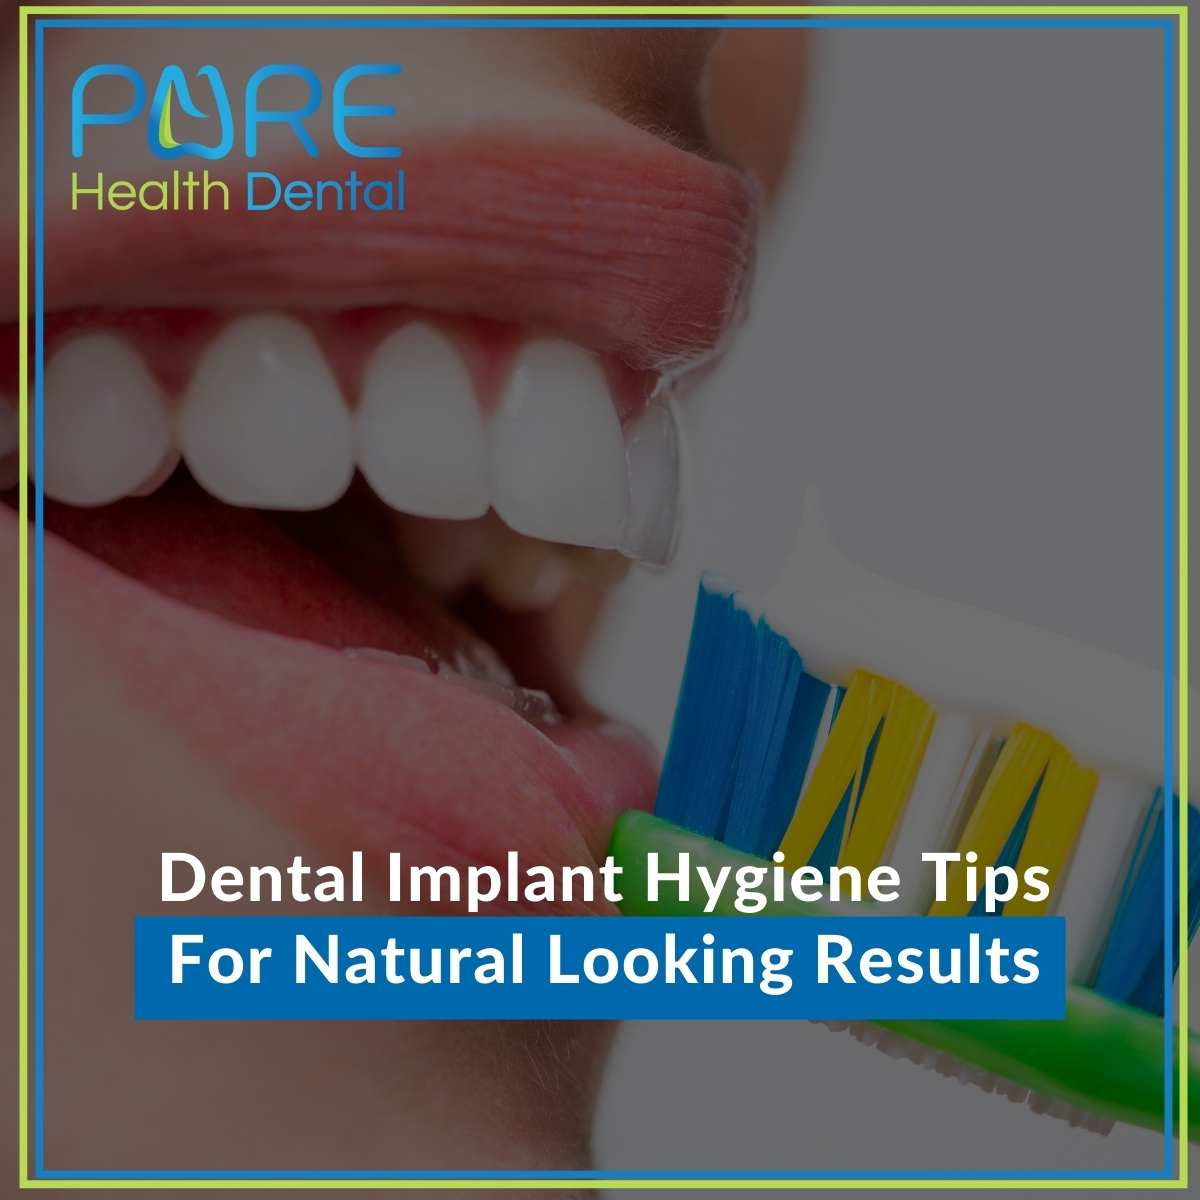 Dental Implant Hygiene Tips For Natural Looking Results